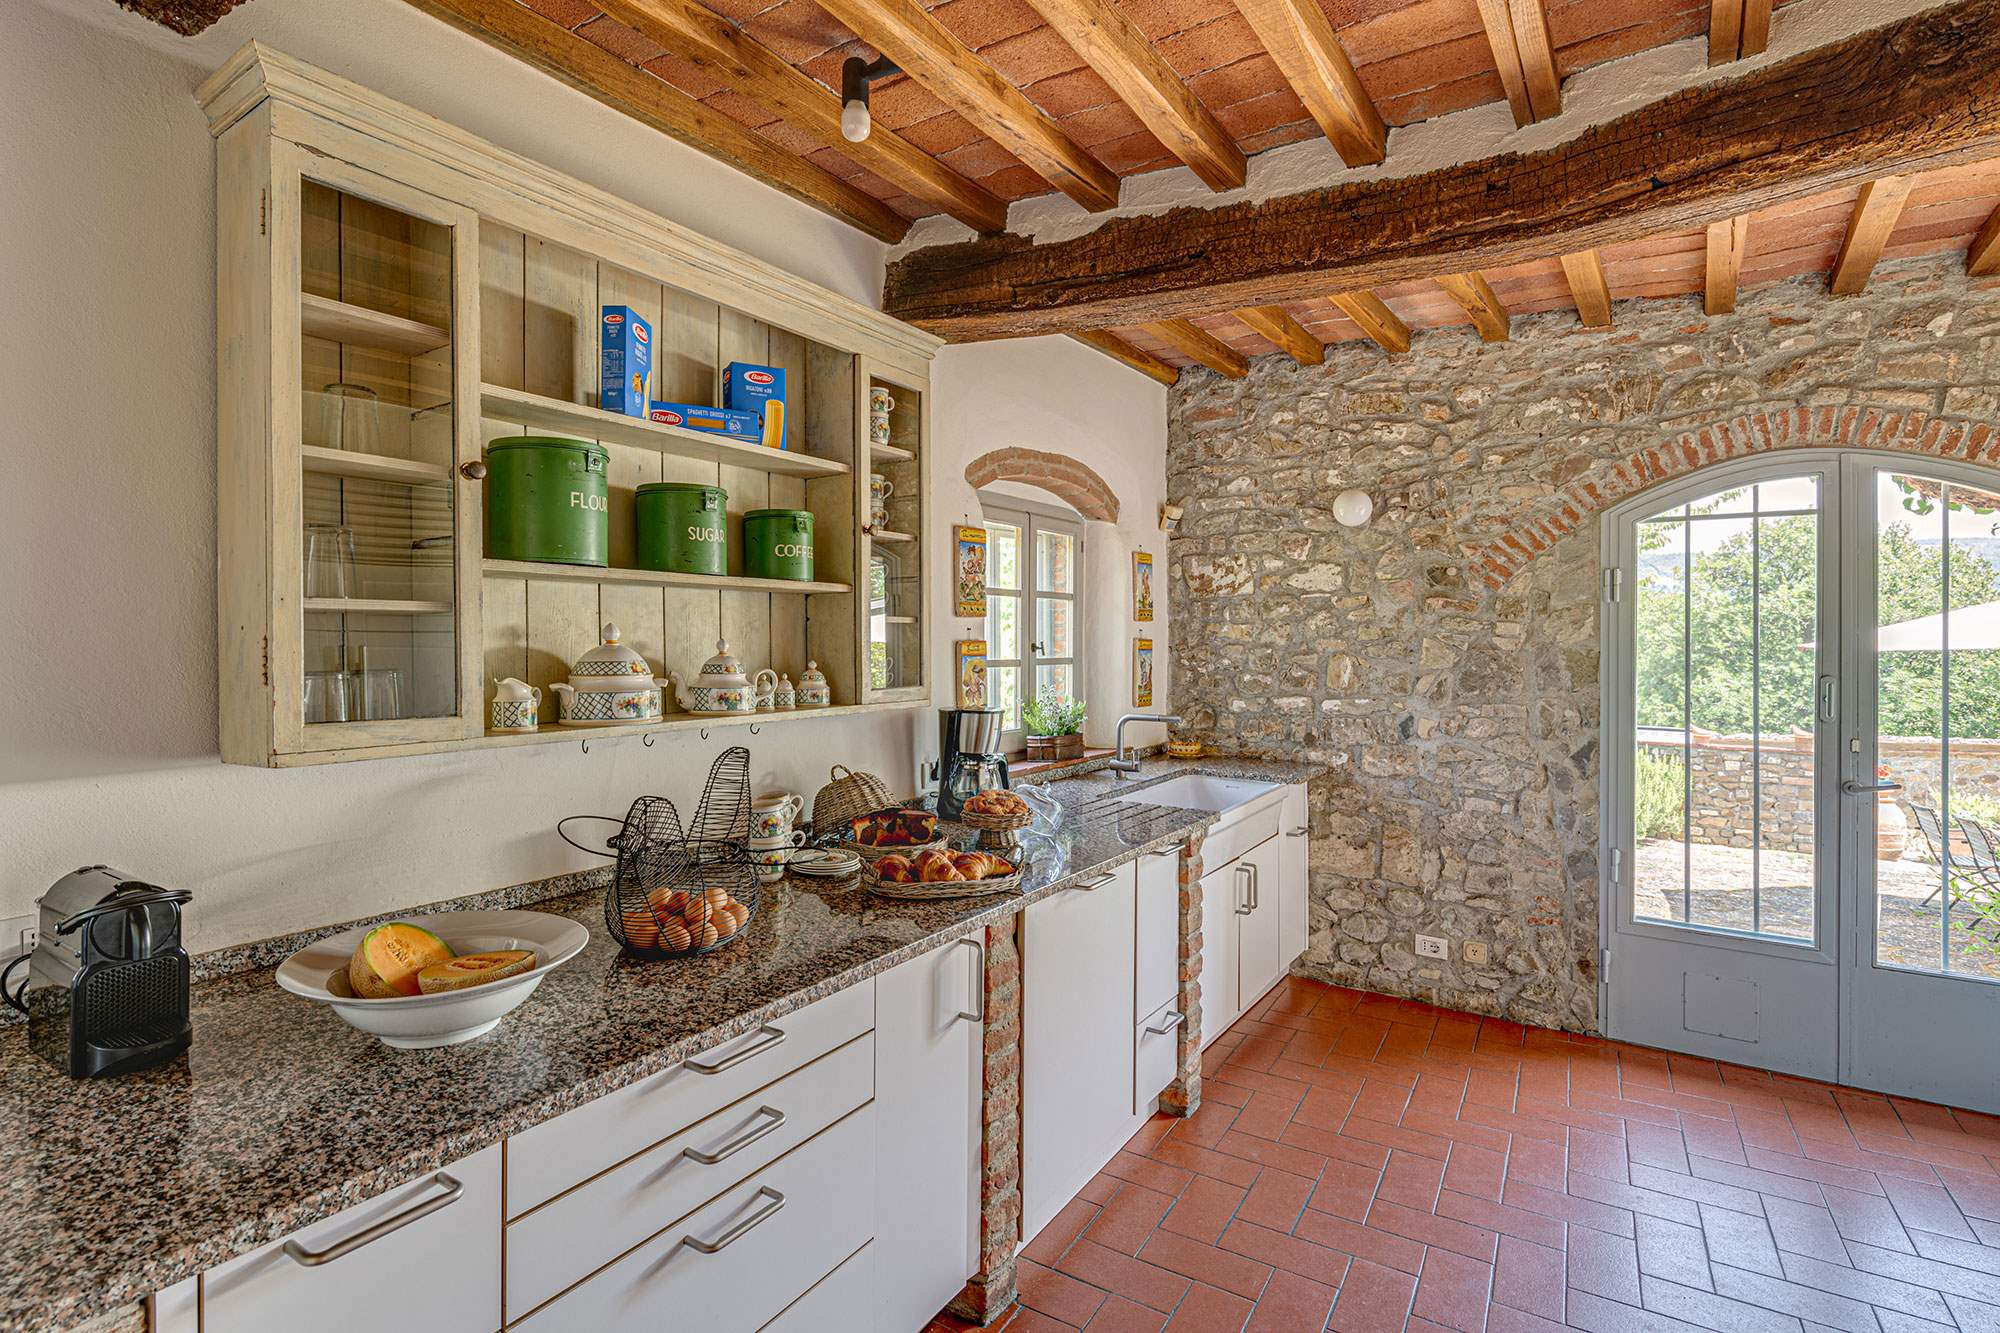 Villa Claudia, 5 Bedroom rate, 5 bedroom villa in Chianti & Countryside, Tuscany Photo #10